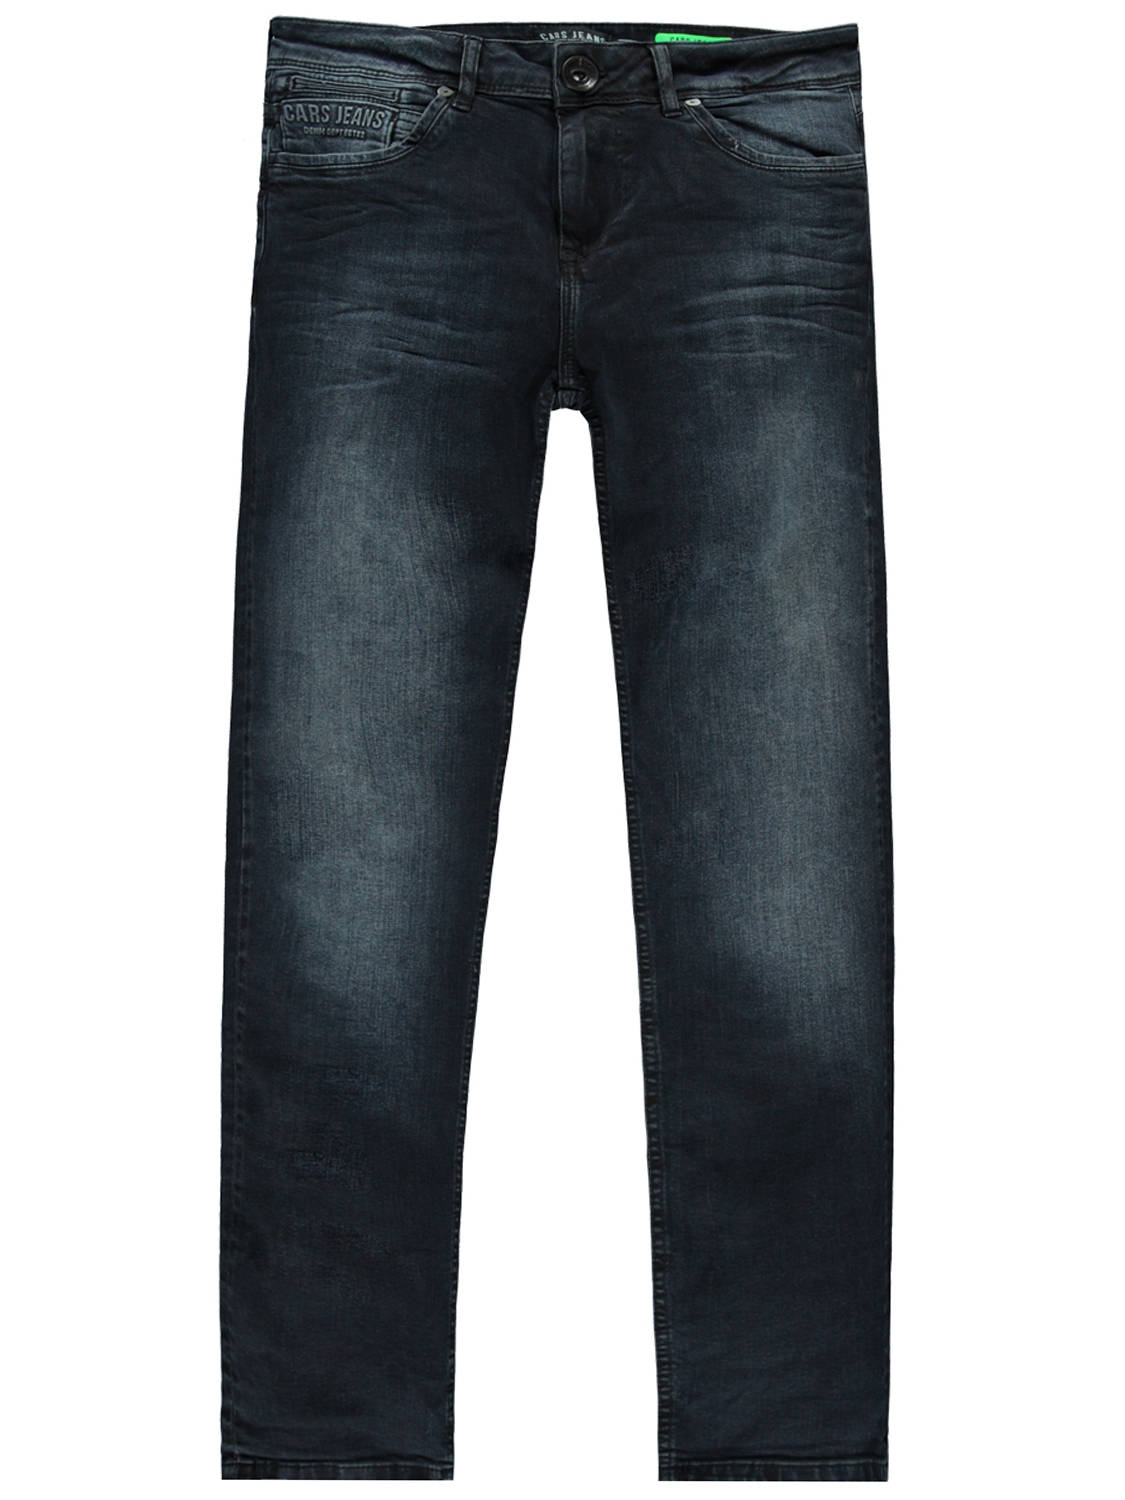 Cars Jeans Cars Jeans BLAST Slim Fit Blue Black